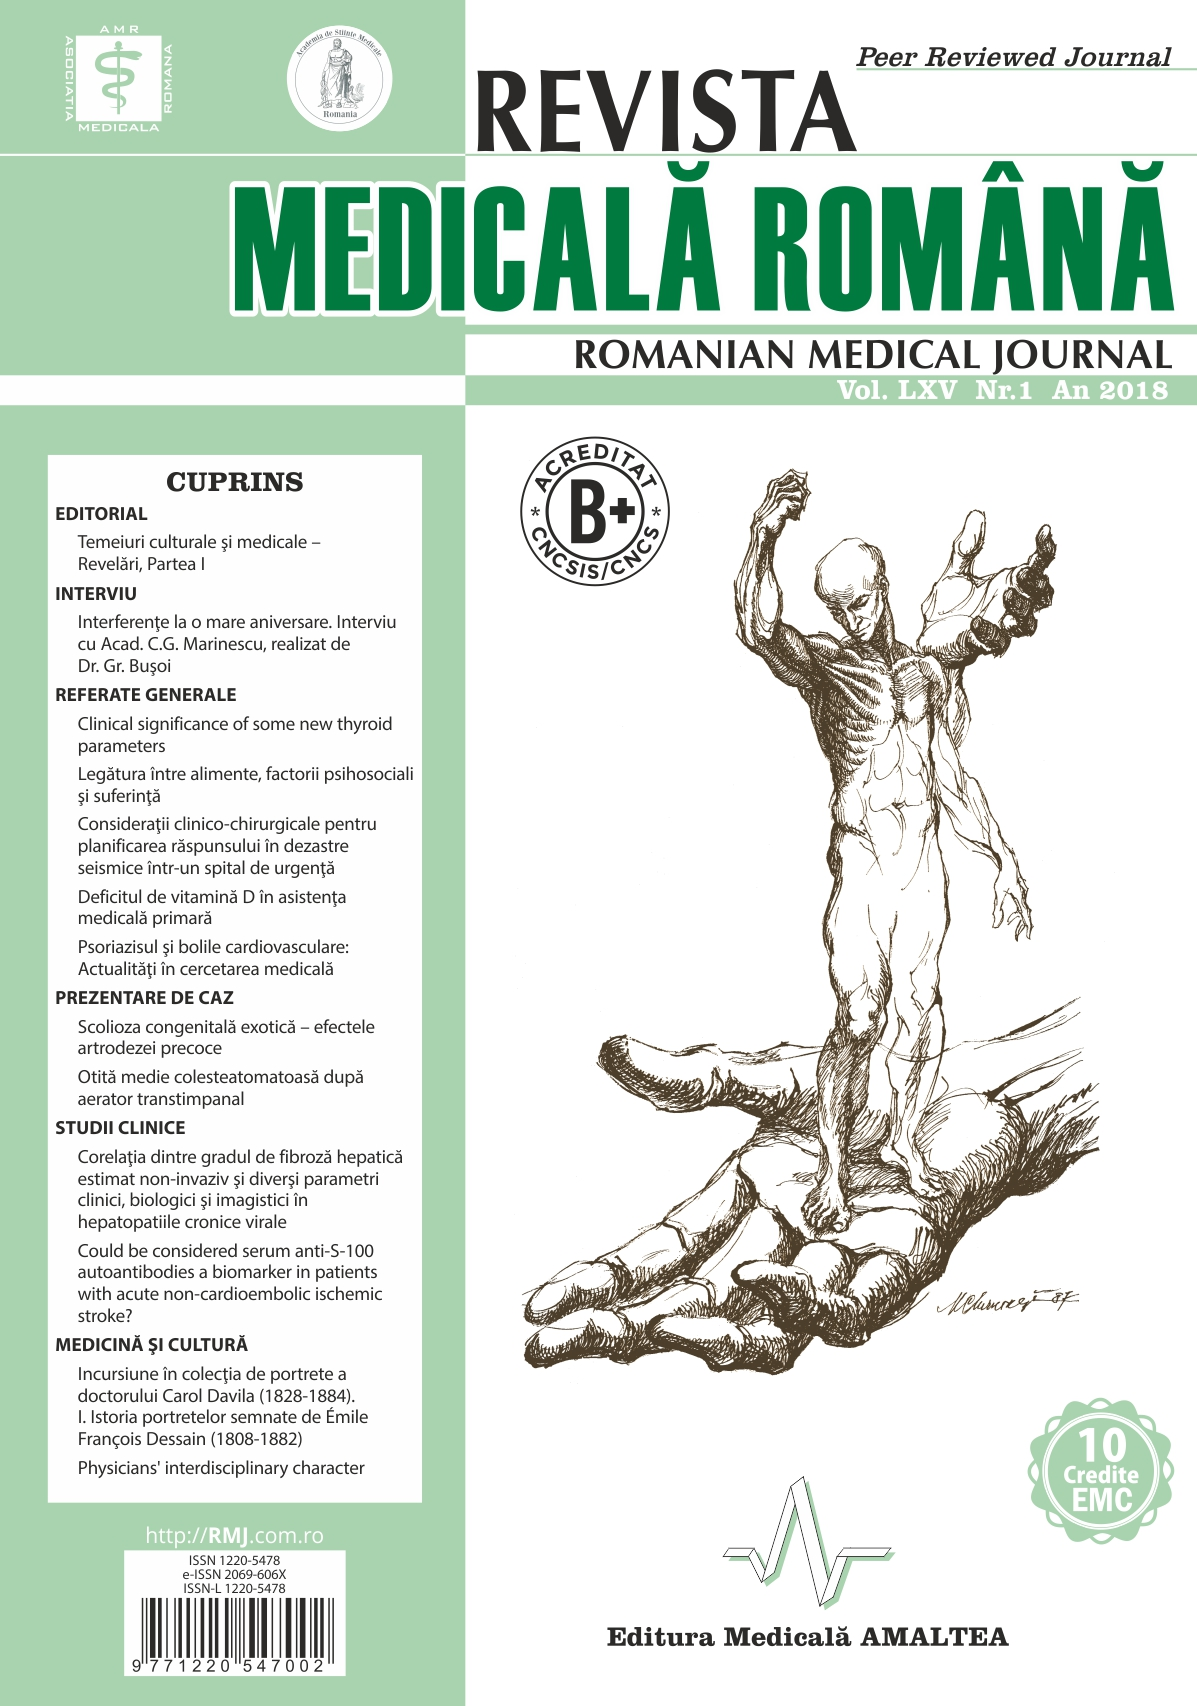 REVISTA MEDICALA ROMANA - Romanian Medical Journal, Vol. LXV, Nr. 1, An 2018